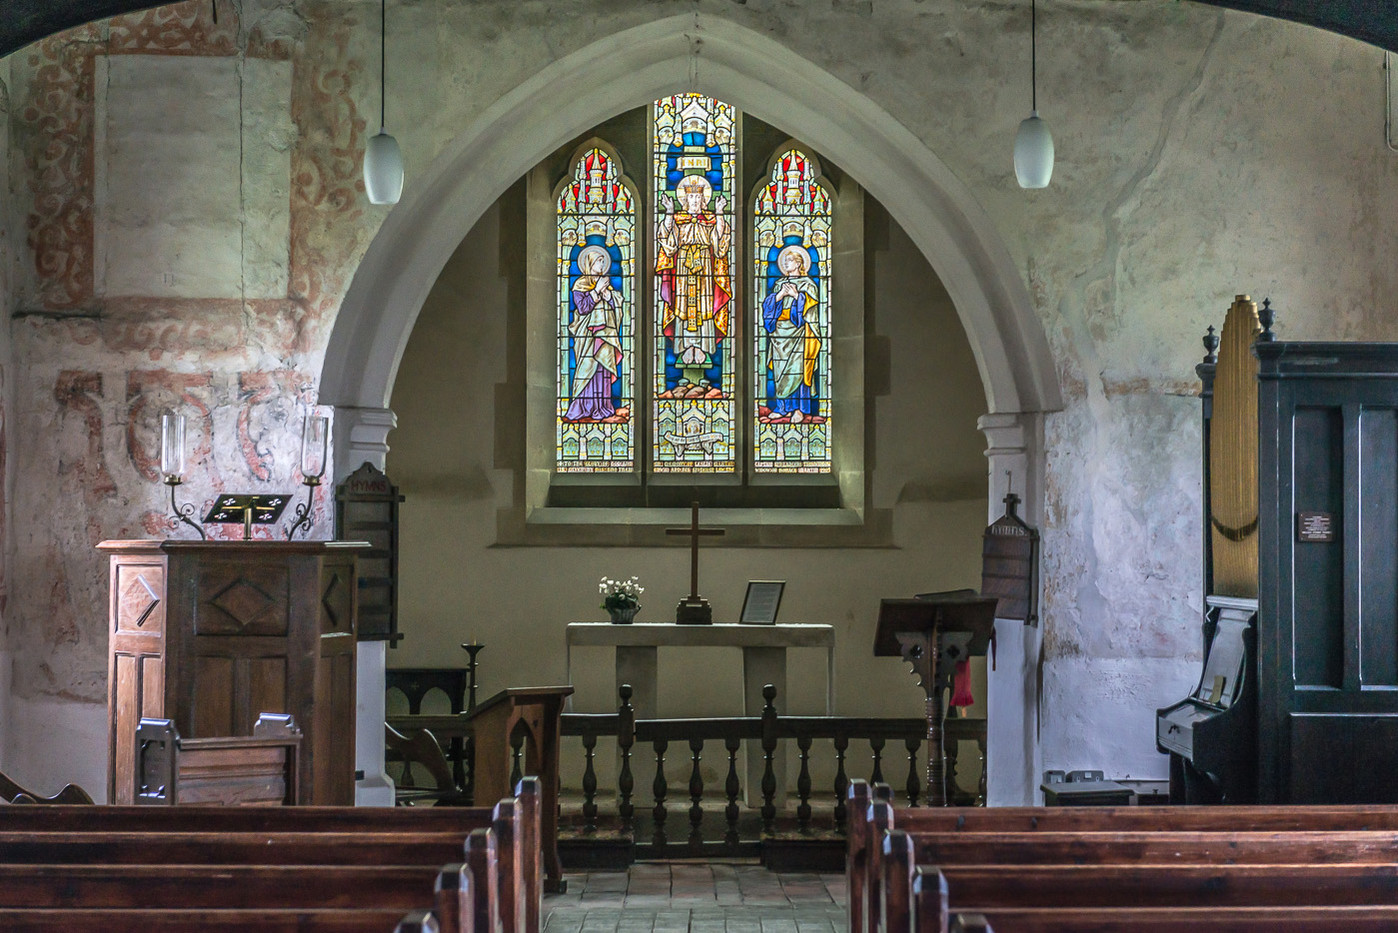 19 INTERIOR OF ST THOMAS A BECKET, CAPEL by Chelin Miller